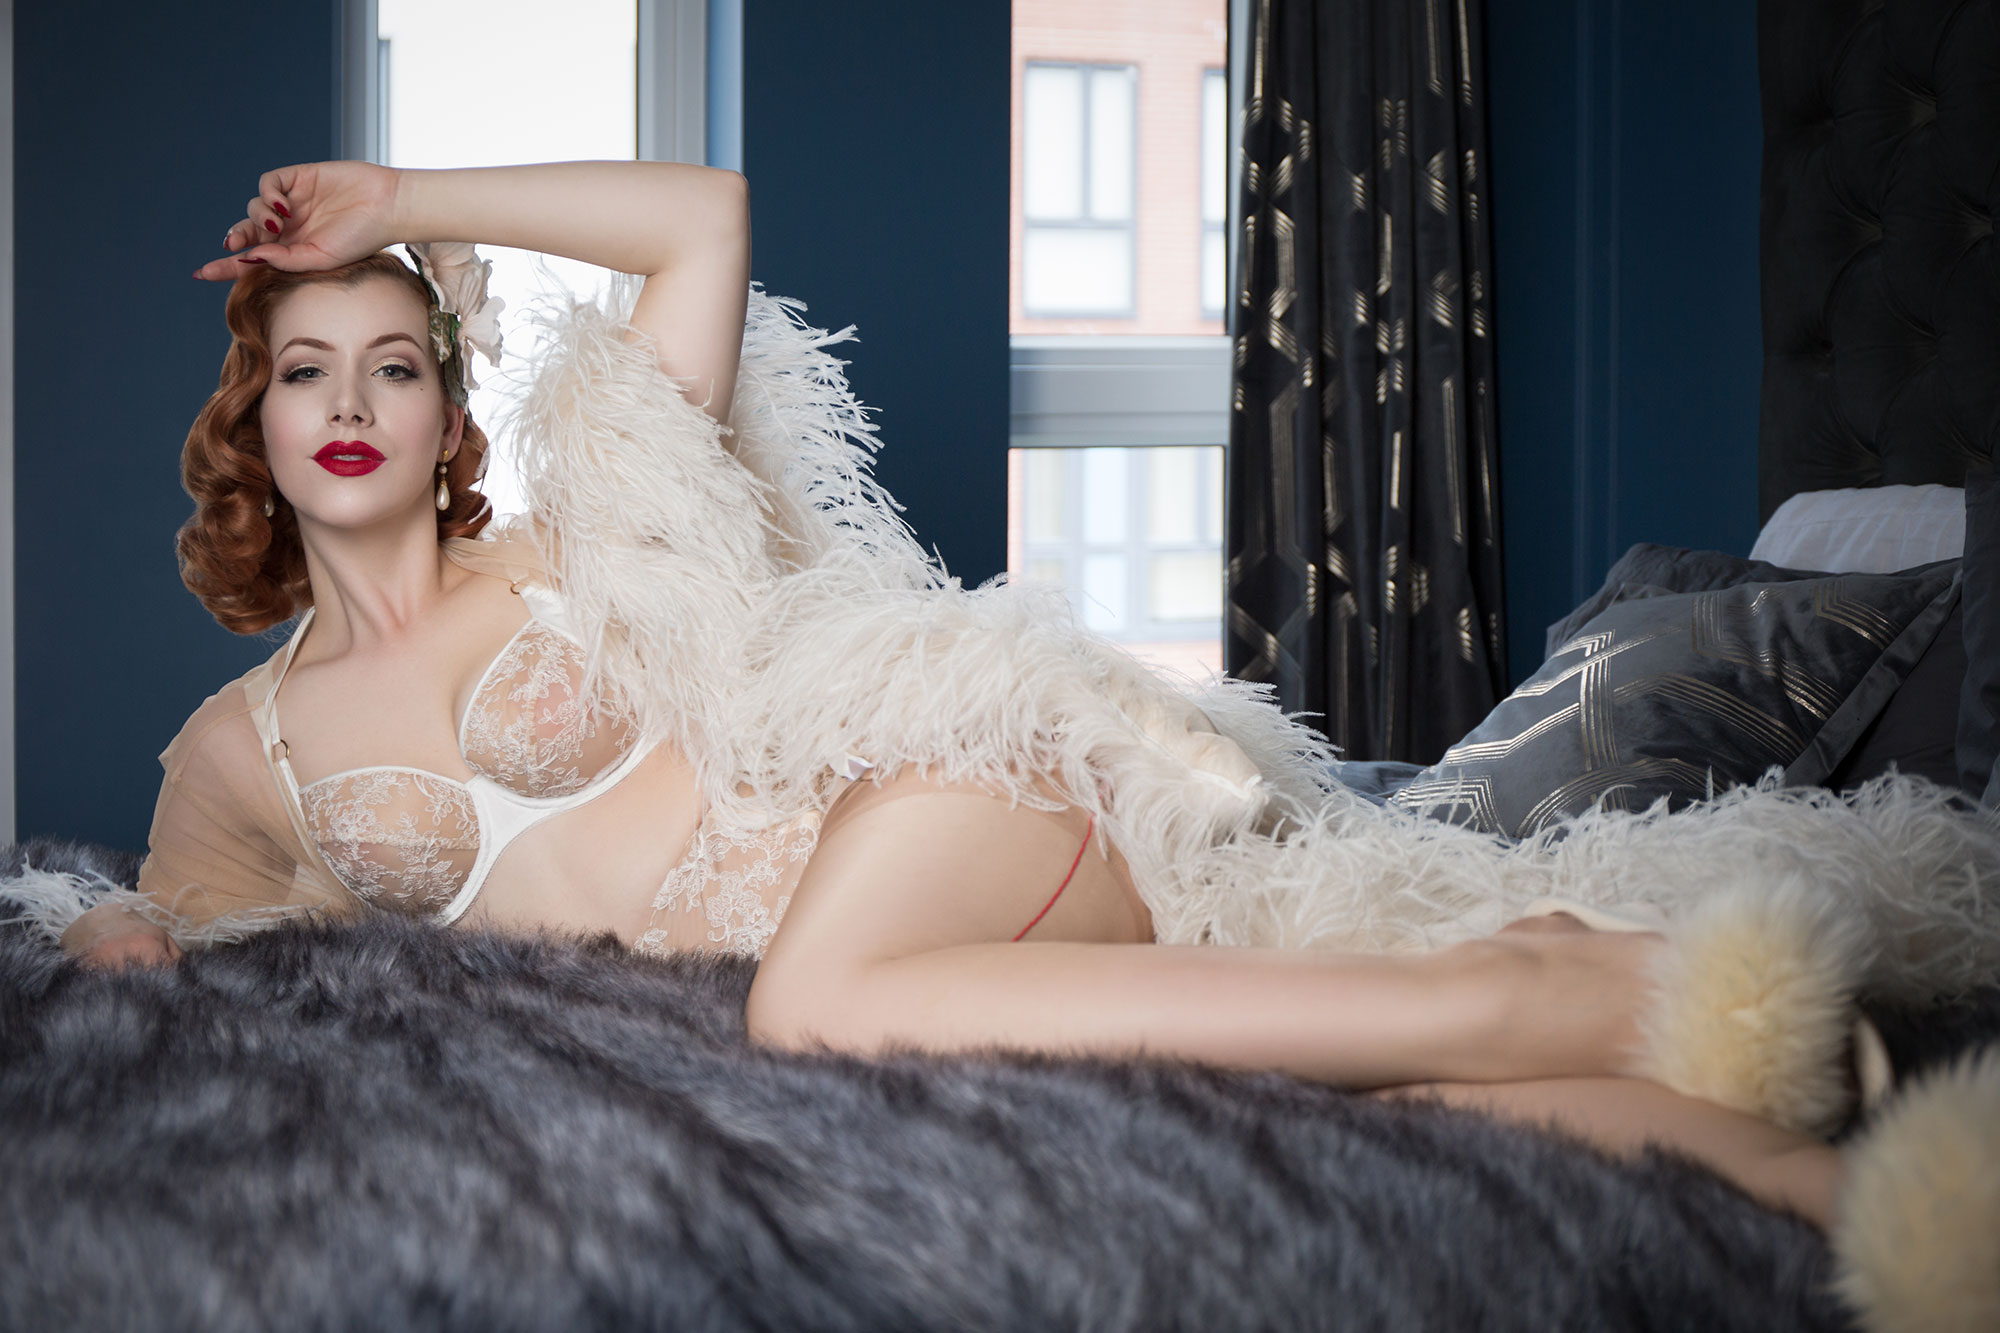 Fuller Bust Bras: Miss Victory Miss Victory Violet wears Harlow and Fox © Tigz Rice Studios 2018. https://www.tigzrice.comViolet wears Harlow and Fox © Tigz Rice Studios 2018. https://www.tigzrice.com